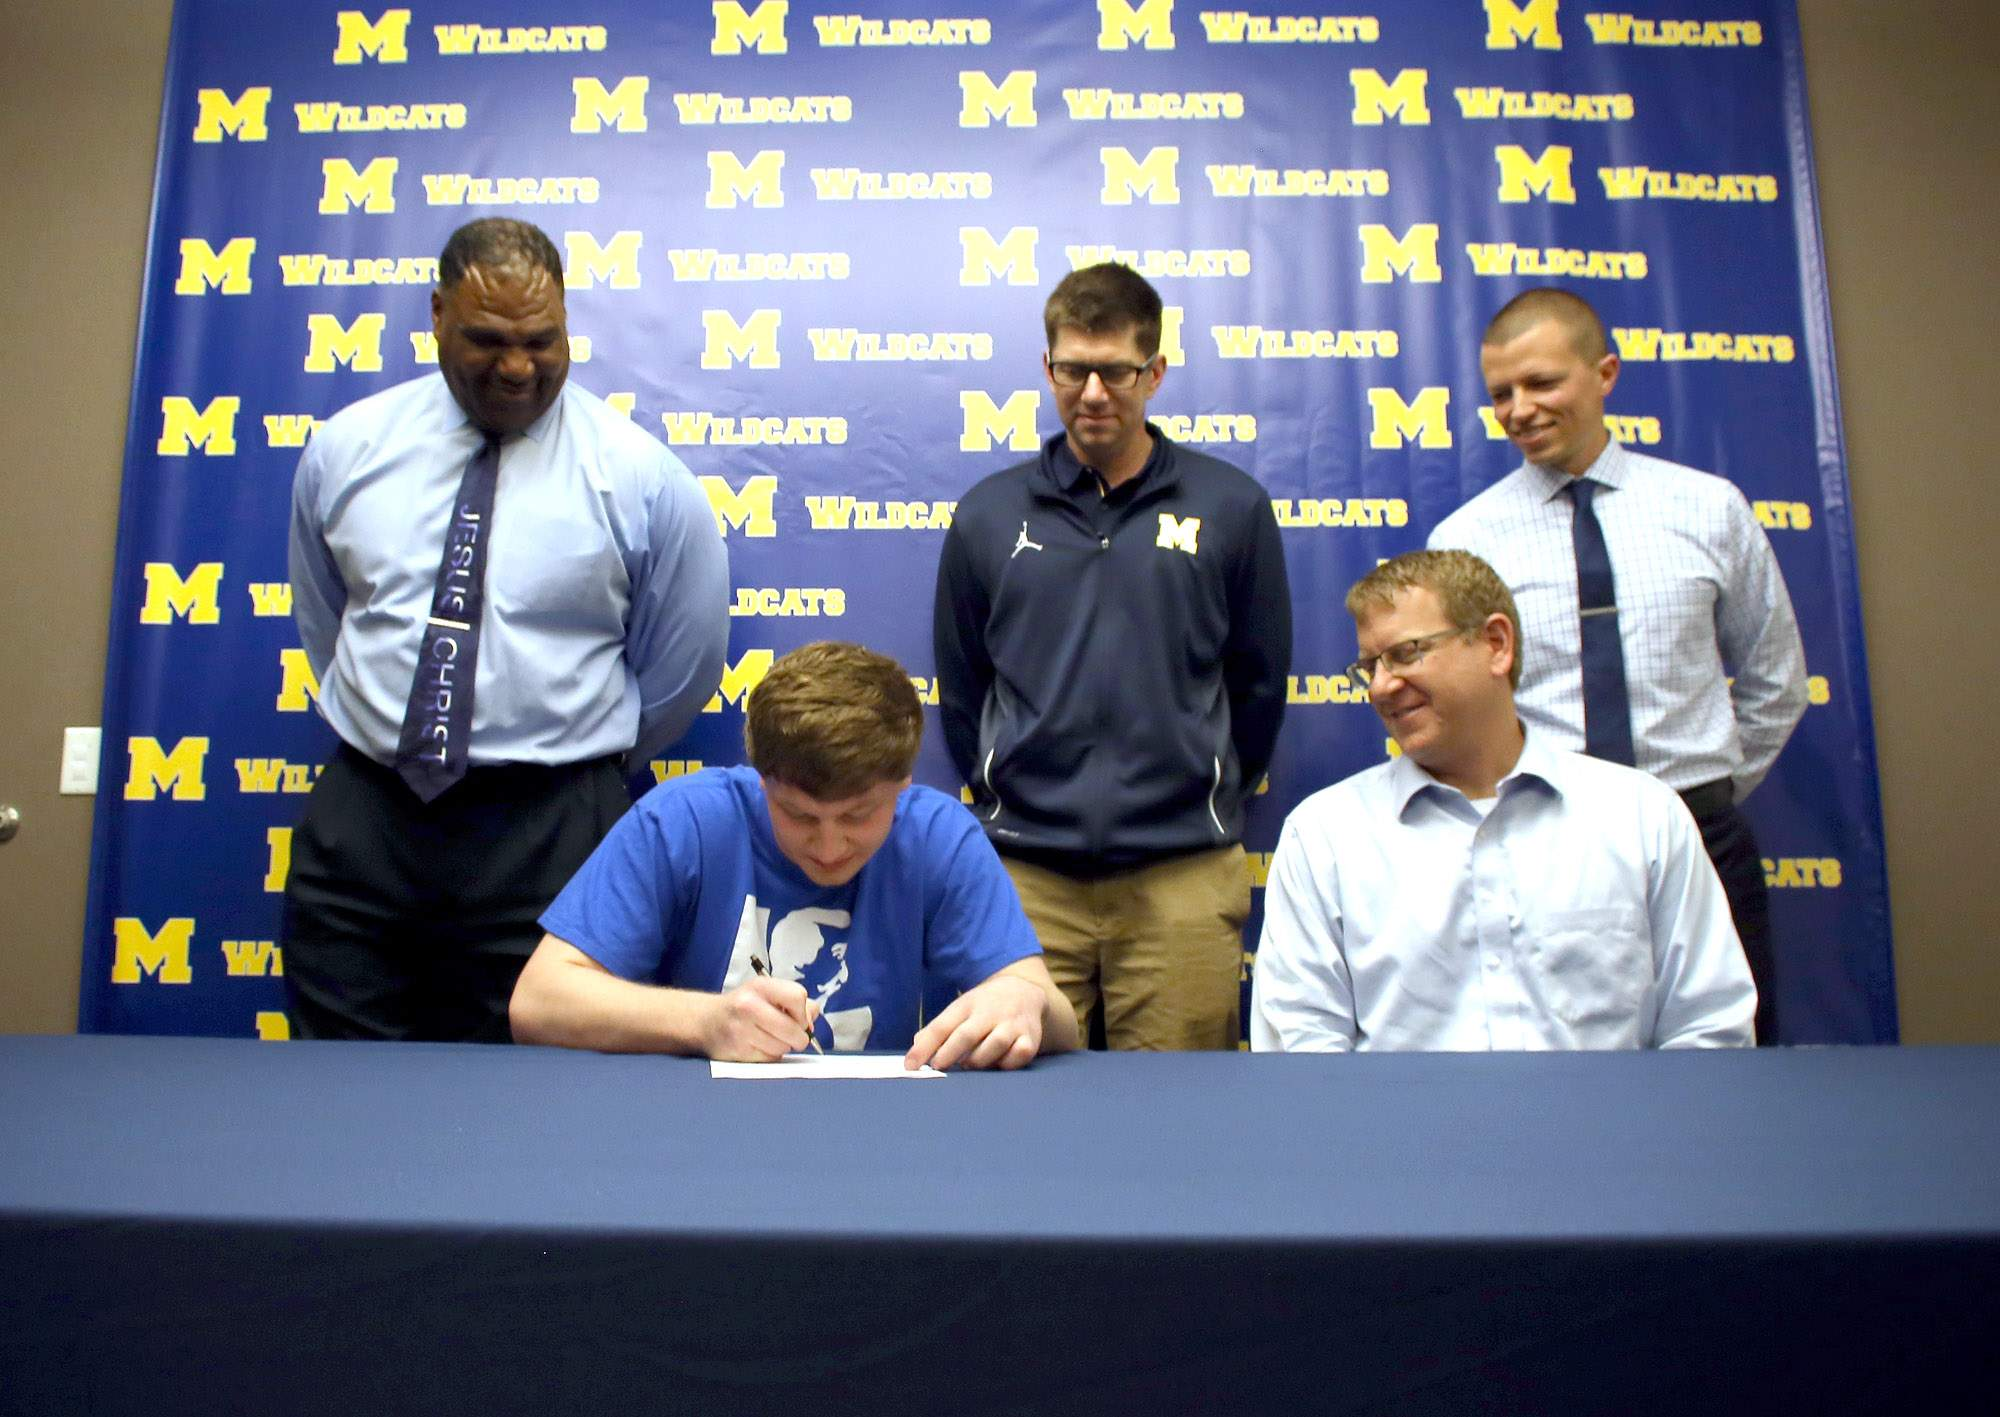 Marion High School senior Justin Saddoris signed a national letter of intent Thursday morning to join the John A. Logan College men's basketball program. Saddoris was joined by father Todd Saddoris, MHS coaches Gus Gillespie and Darrell Wimberly and MHS athletic director Ryan Goodisky.